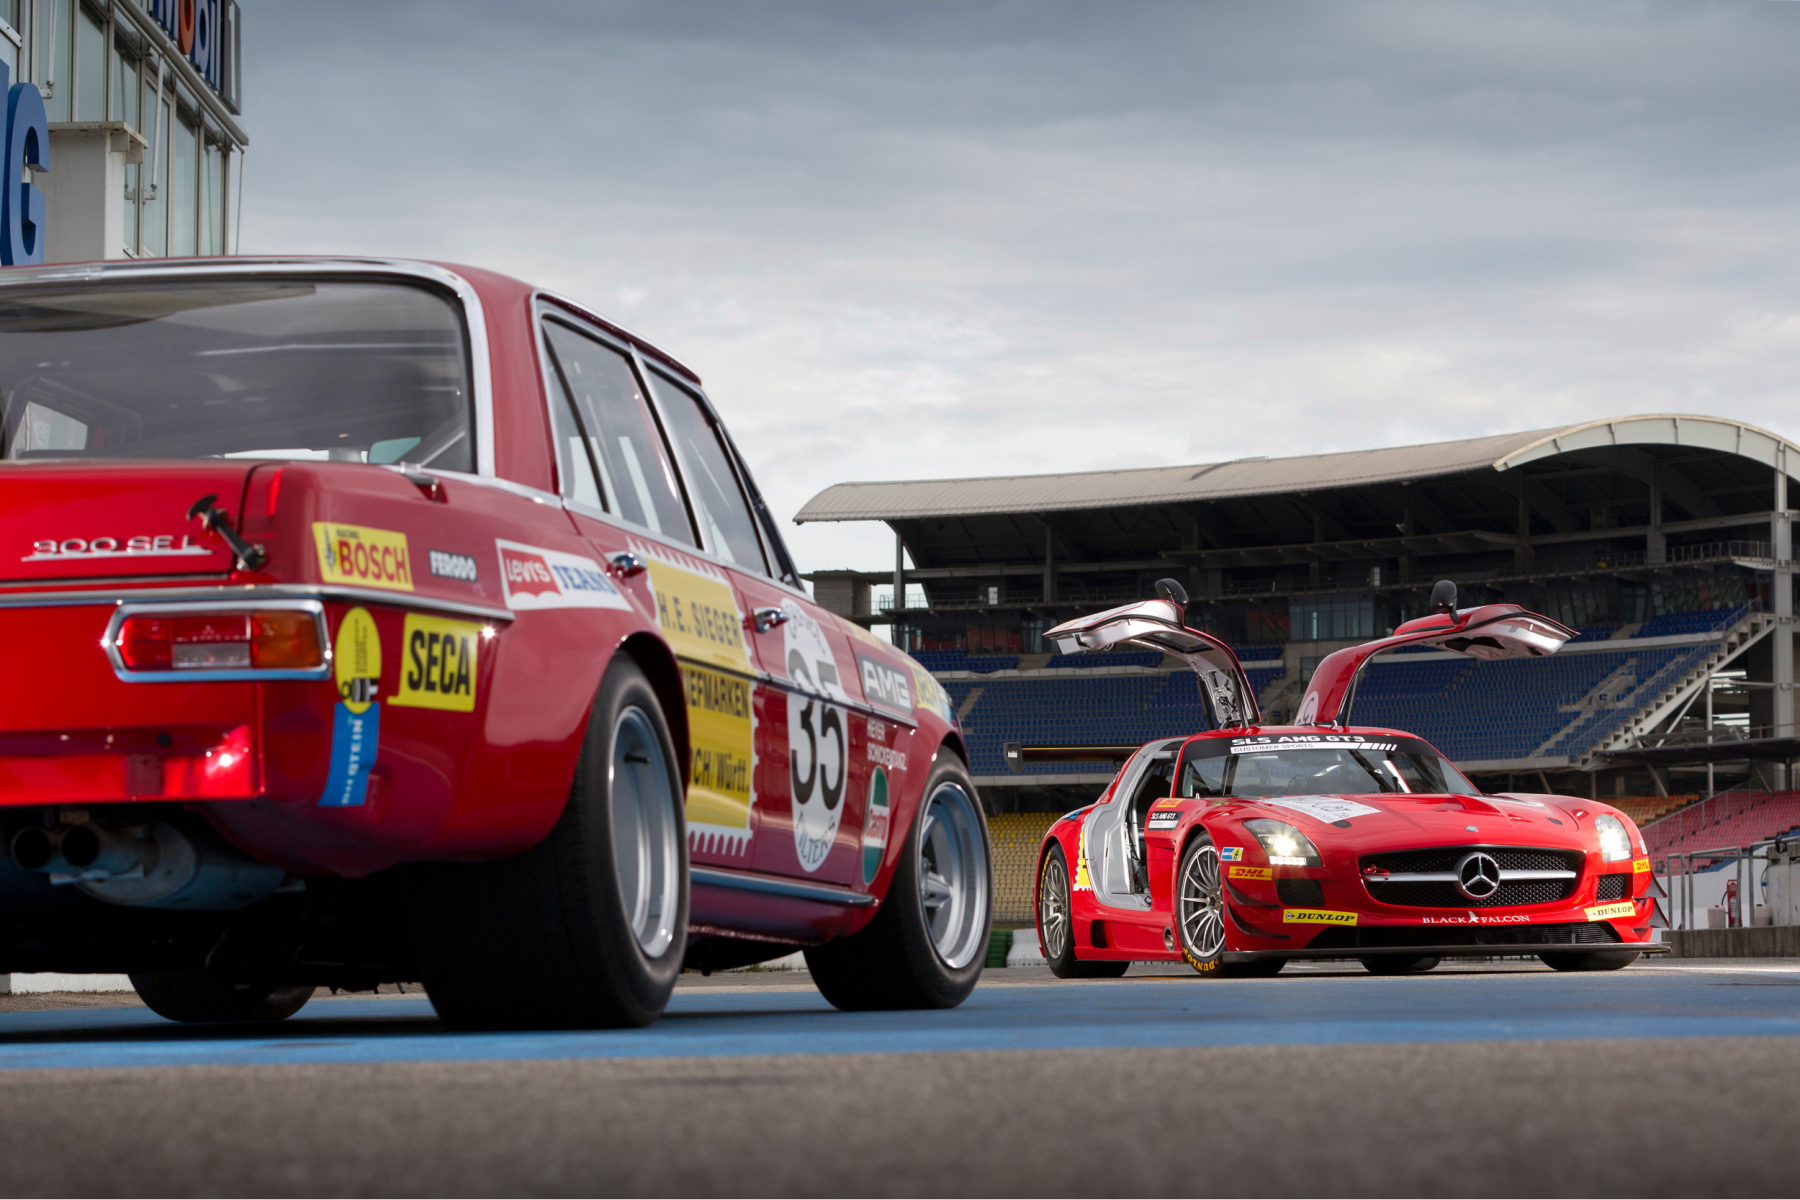 AMG 300 SEL 6.8 racing touring car based on the Mercedes-Benz 300 SEL 6.3 (W 109) luxury saloon, detailed reconstruction from 2006 (front left), and Mercedes-Benz SLS AMG GT3 racing car (C 197, rear) with a decal based on the racing touring car of 1971. Photo from 2011.